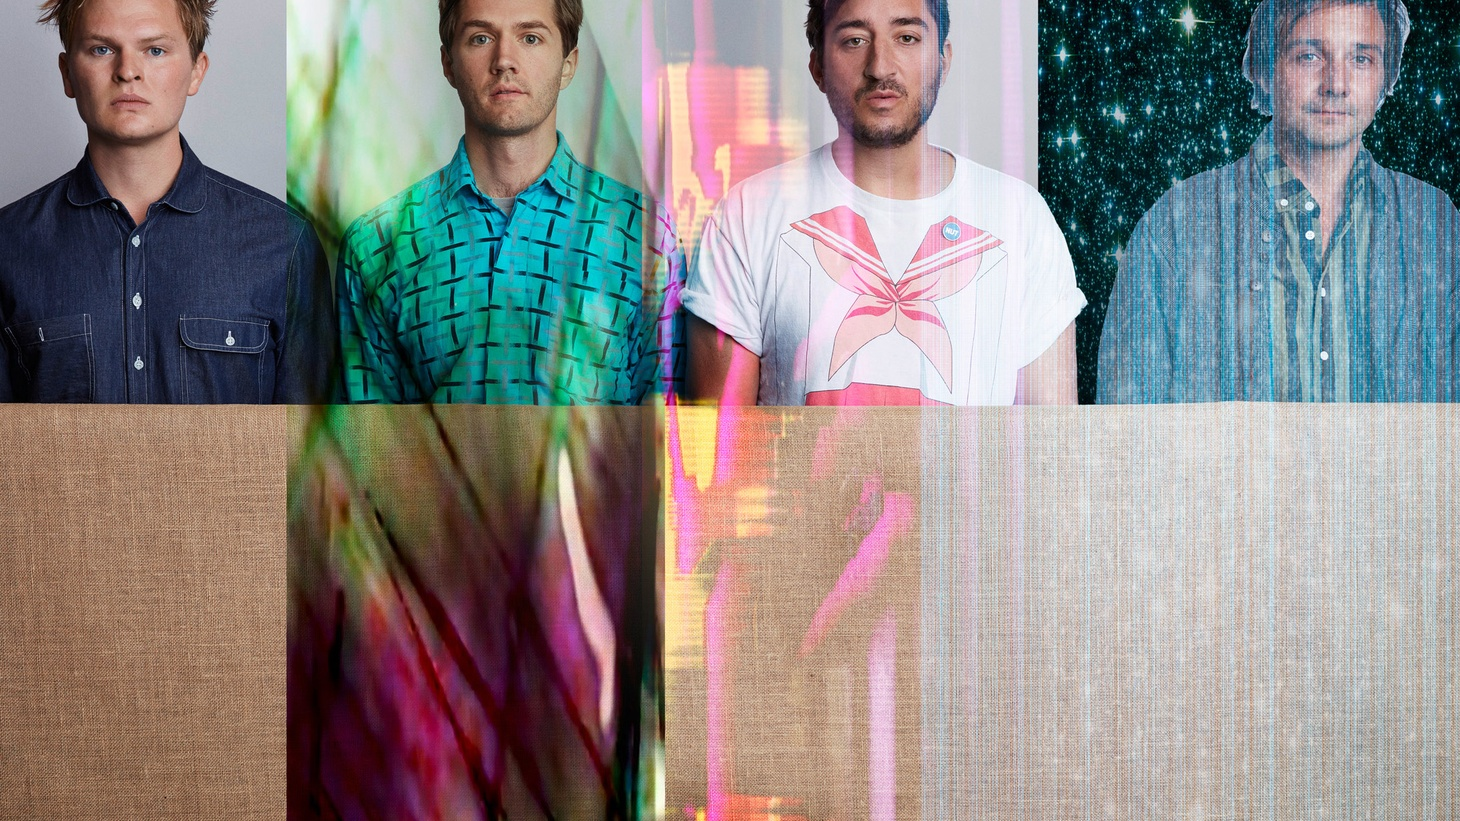 The songs on Grizzly Bear's new album came about in an organic way, via remote writing trips and a retreat into the same NY studio where the band recorded Veckatimest.